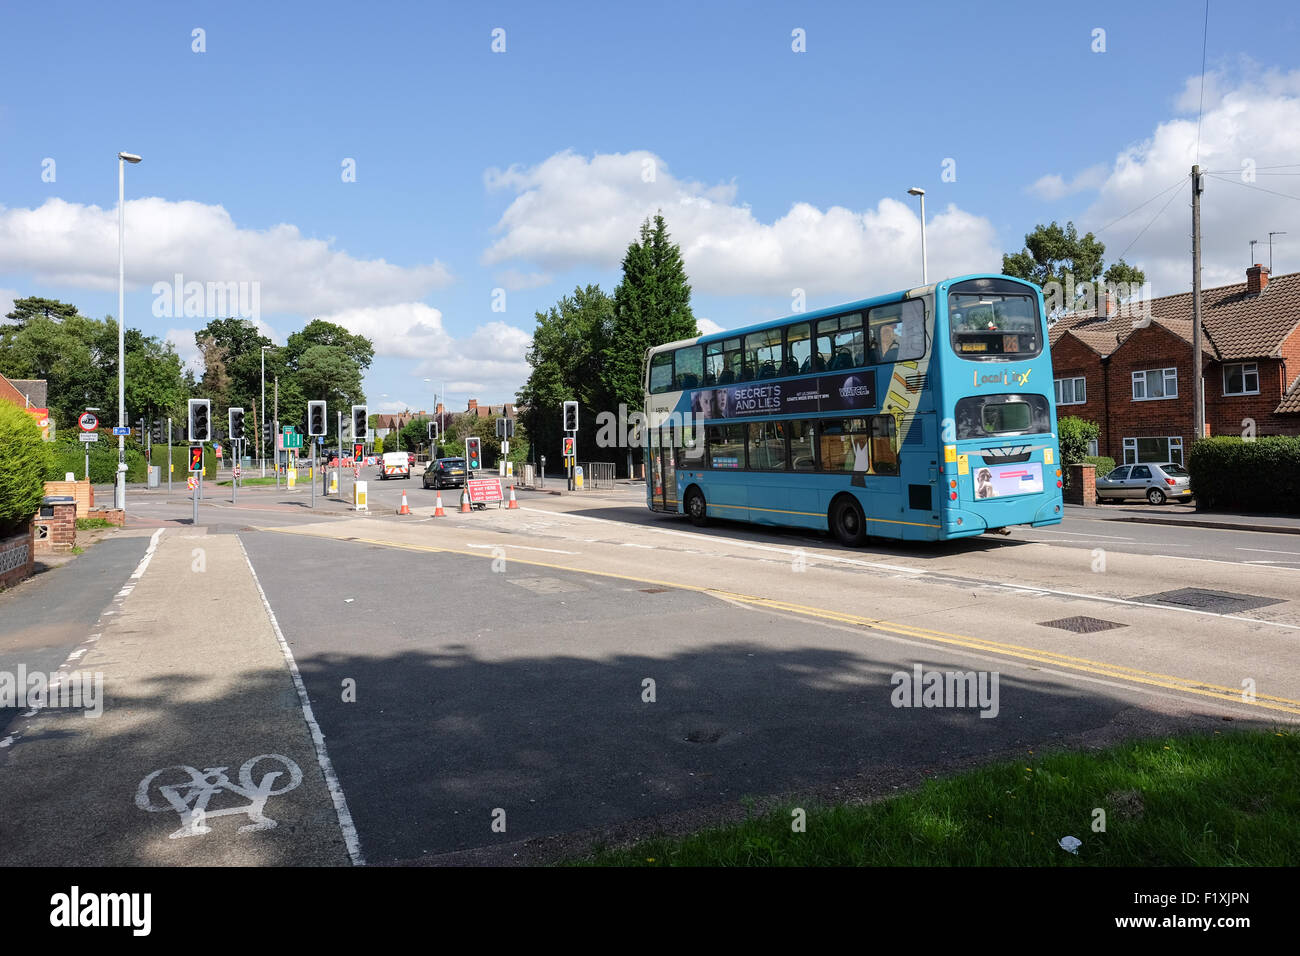 arriva bus in roadworks loughborough - Stock Image